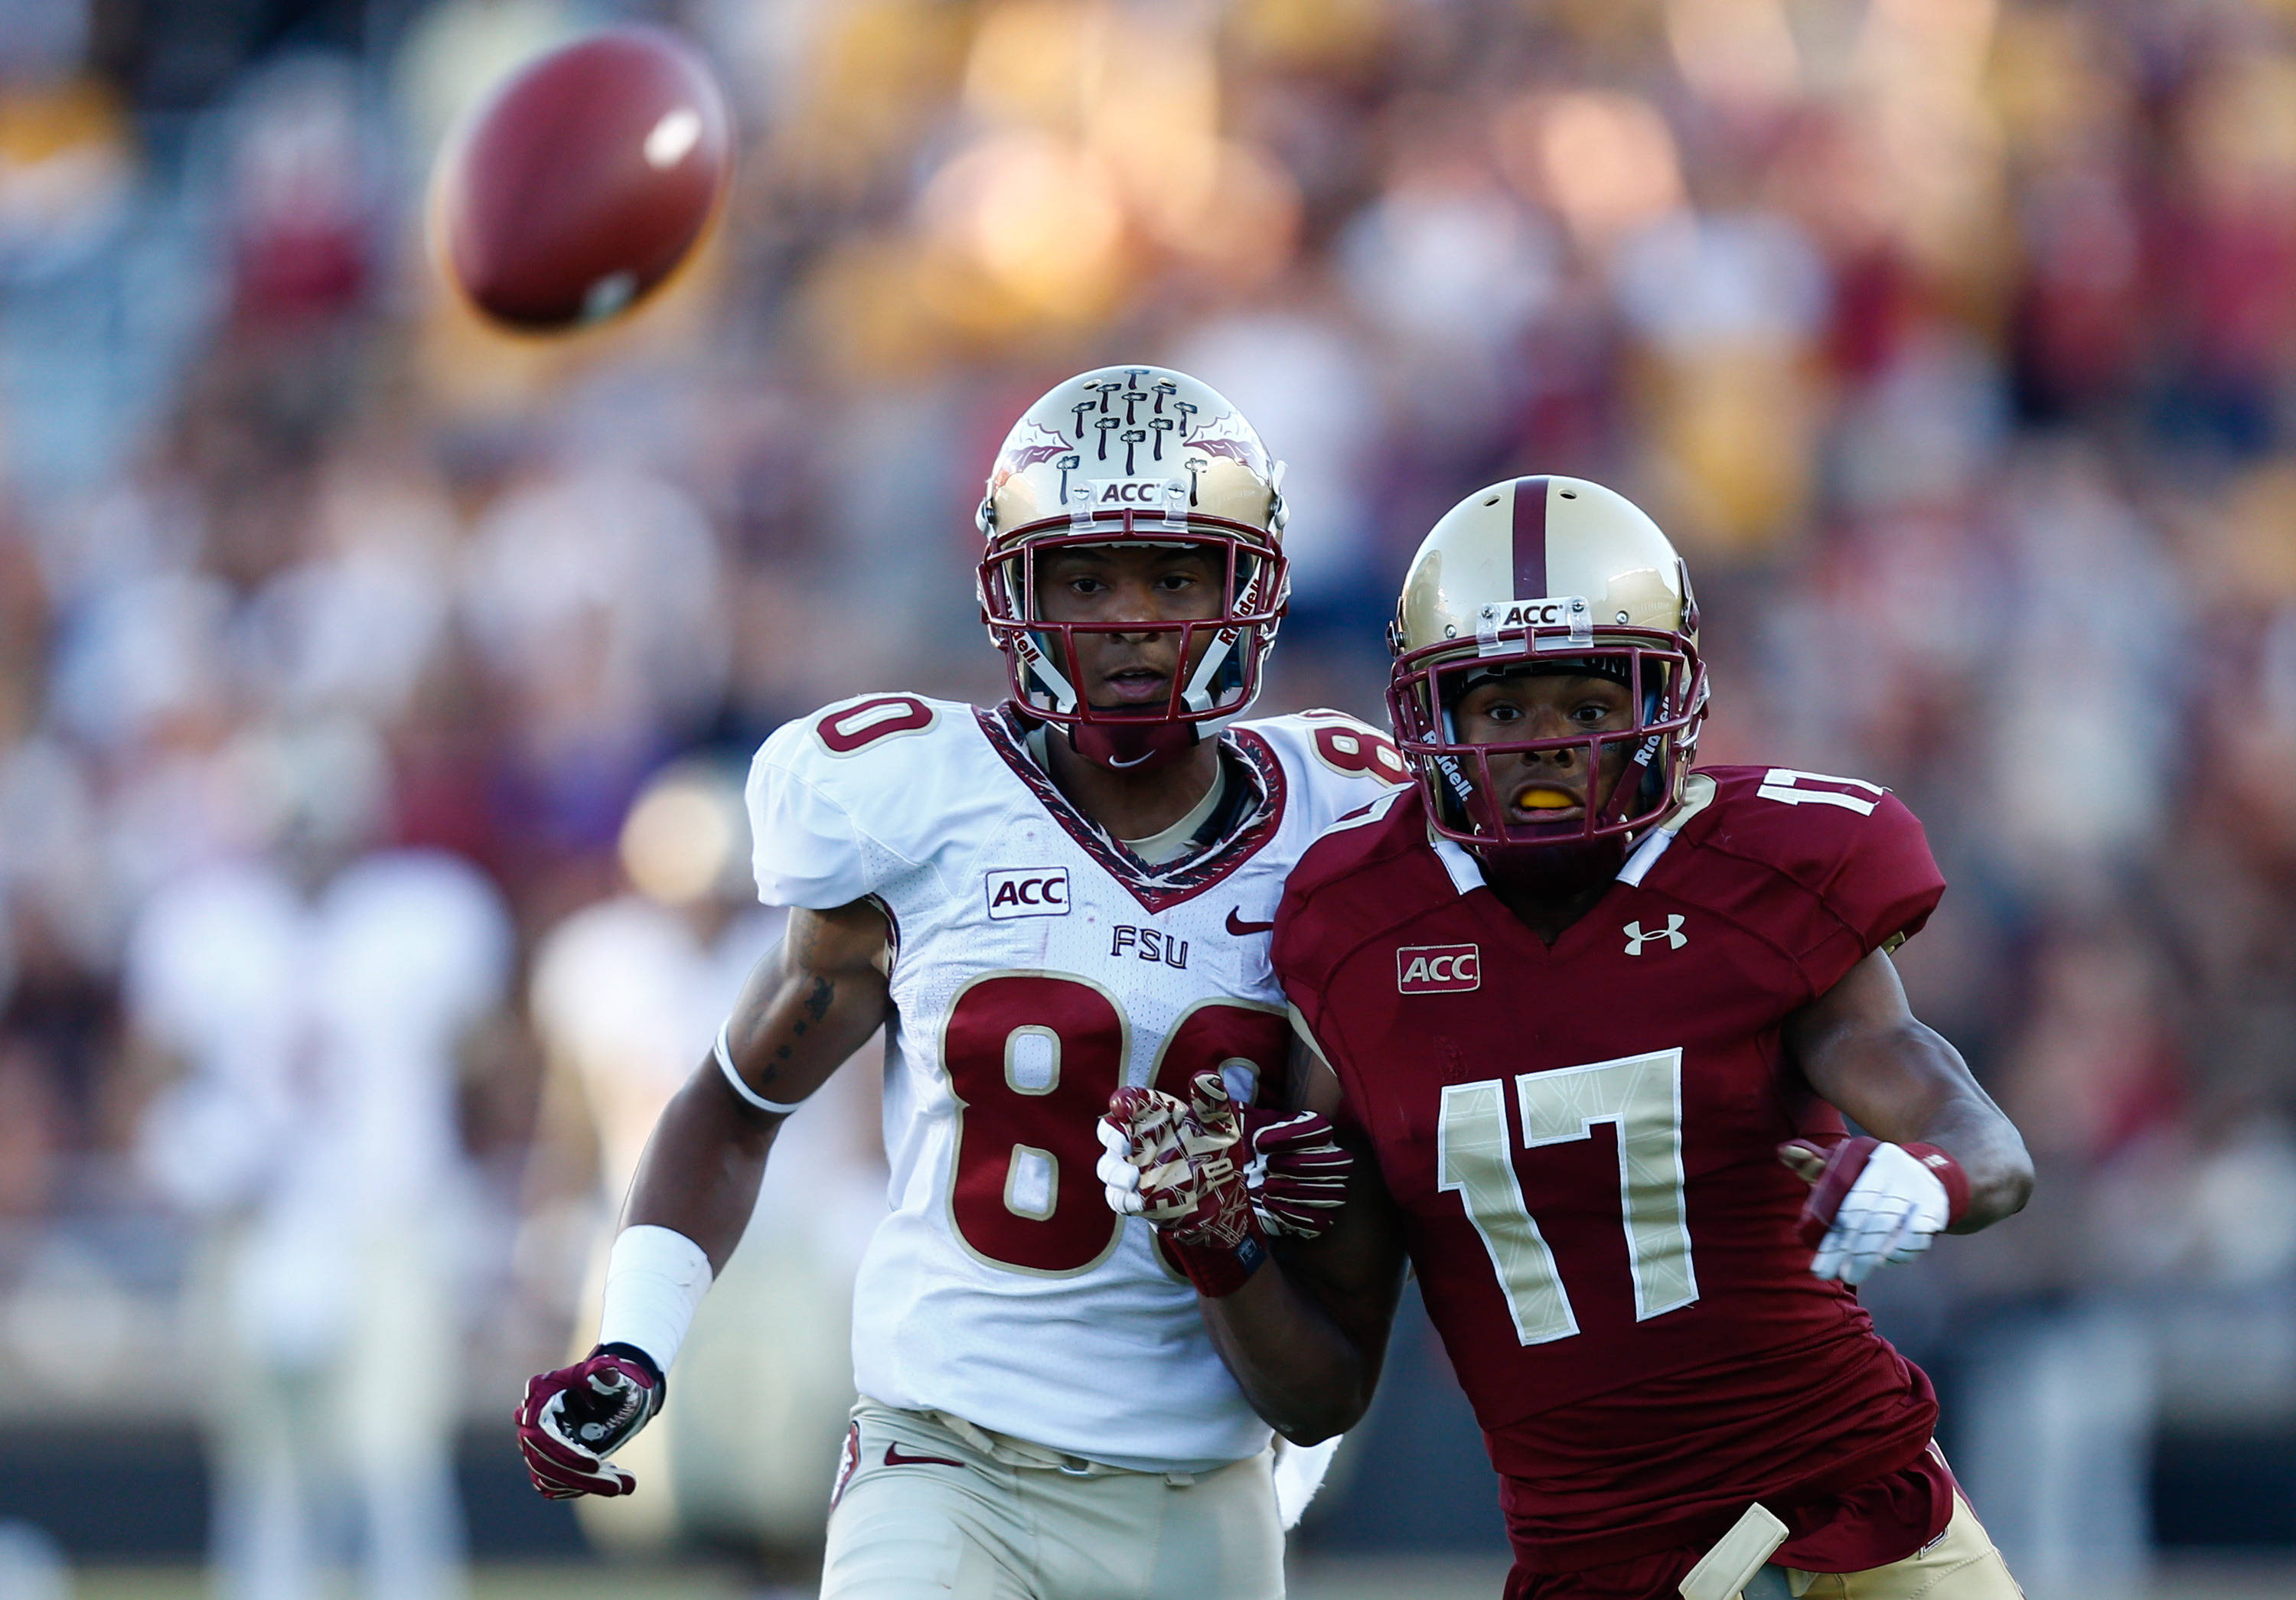 Boston College Eagles defensive back Bryce Jones (17) defends against Florida State Seminoles wide receiver Rashad Greene (80). Mandatory Credit: Mark L. Baer-USA TODAY Sports